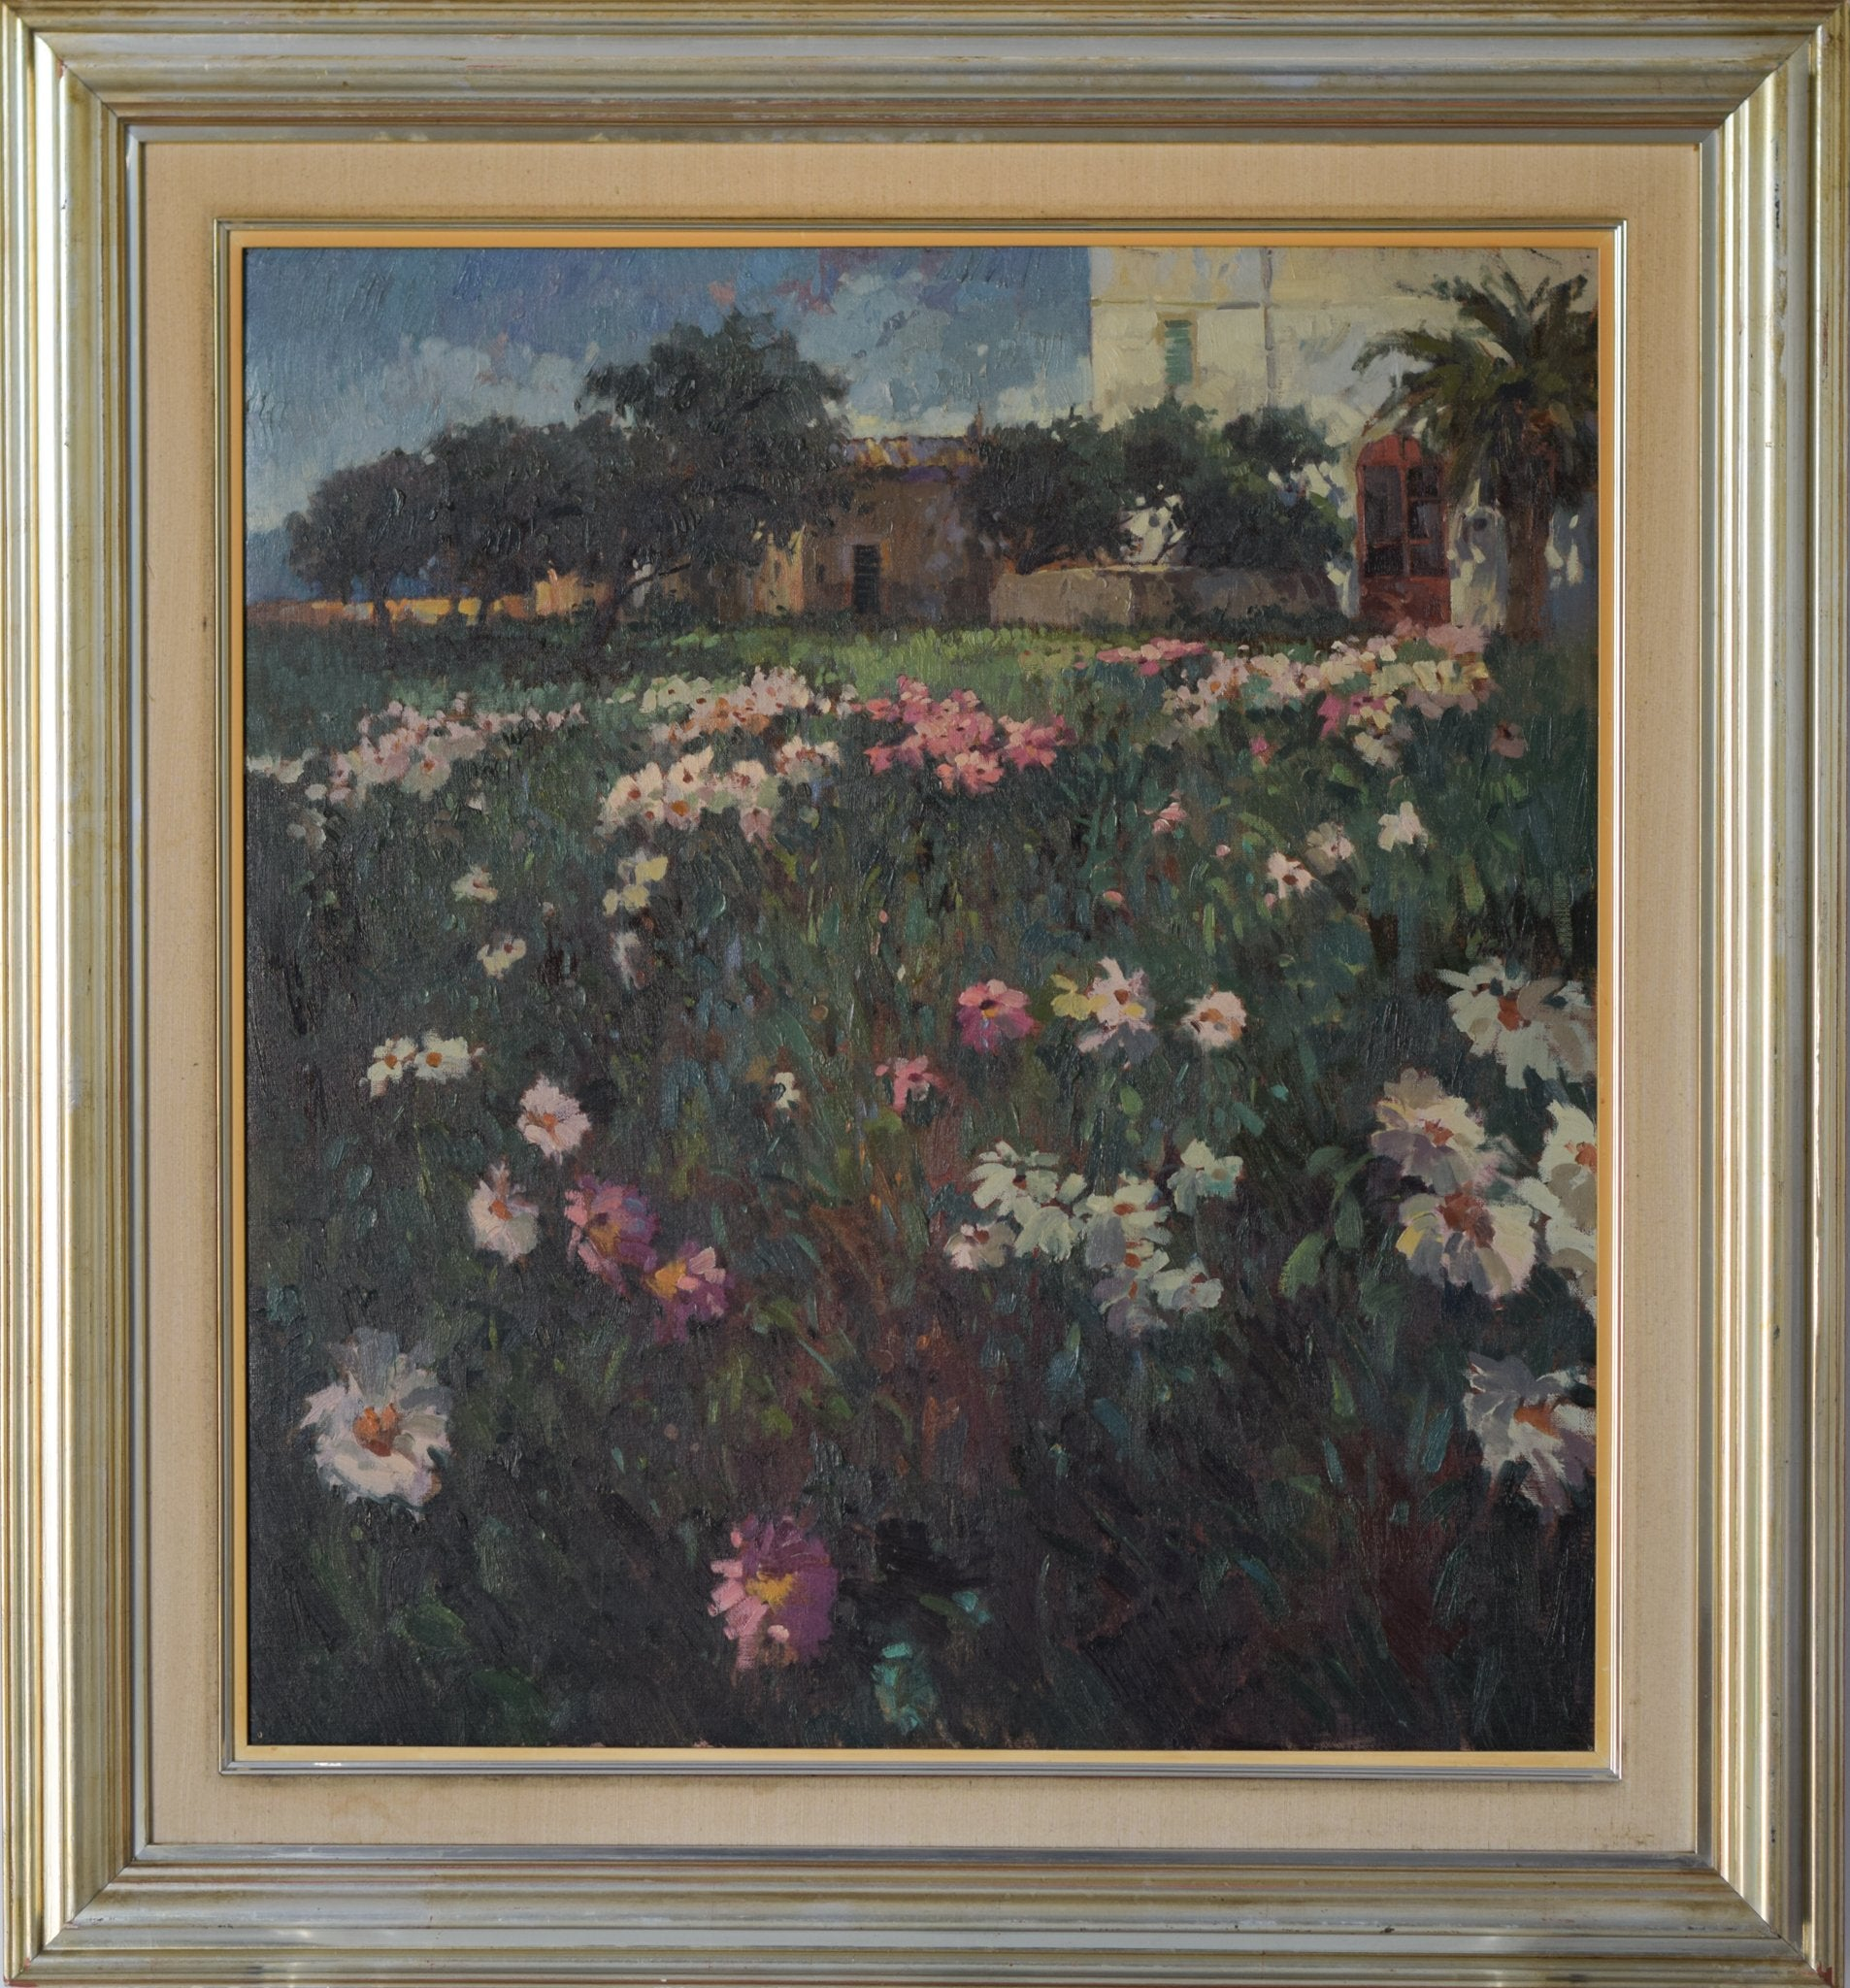 Large Landscape scene with Floral meadow_Framed